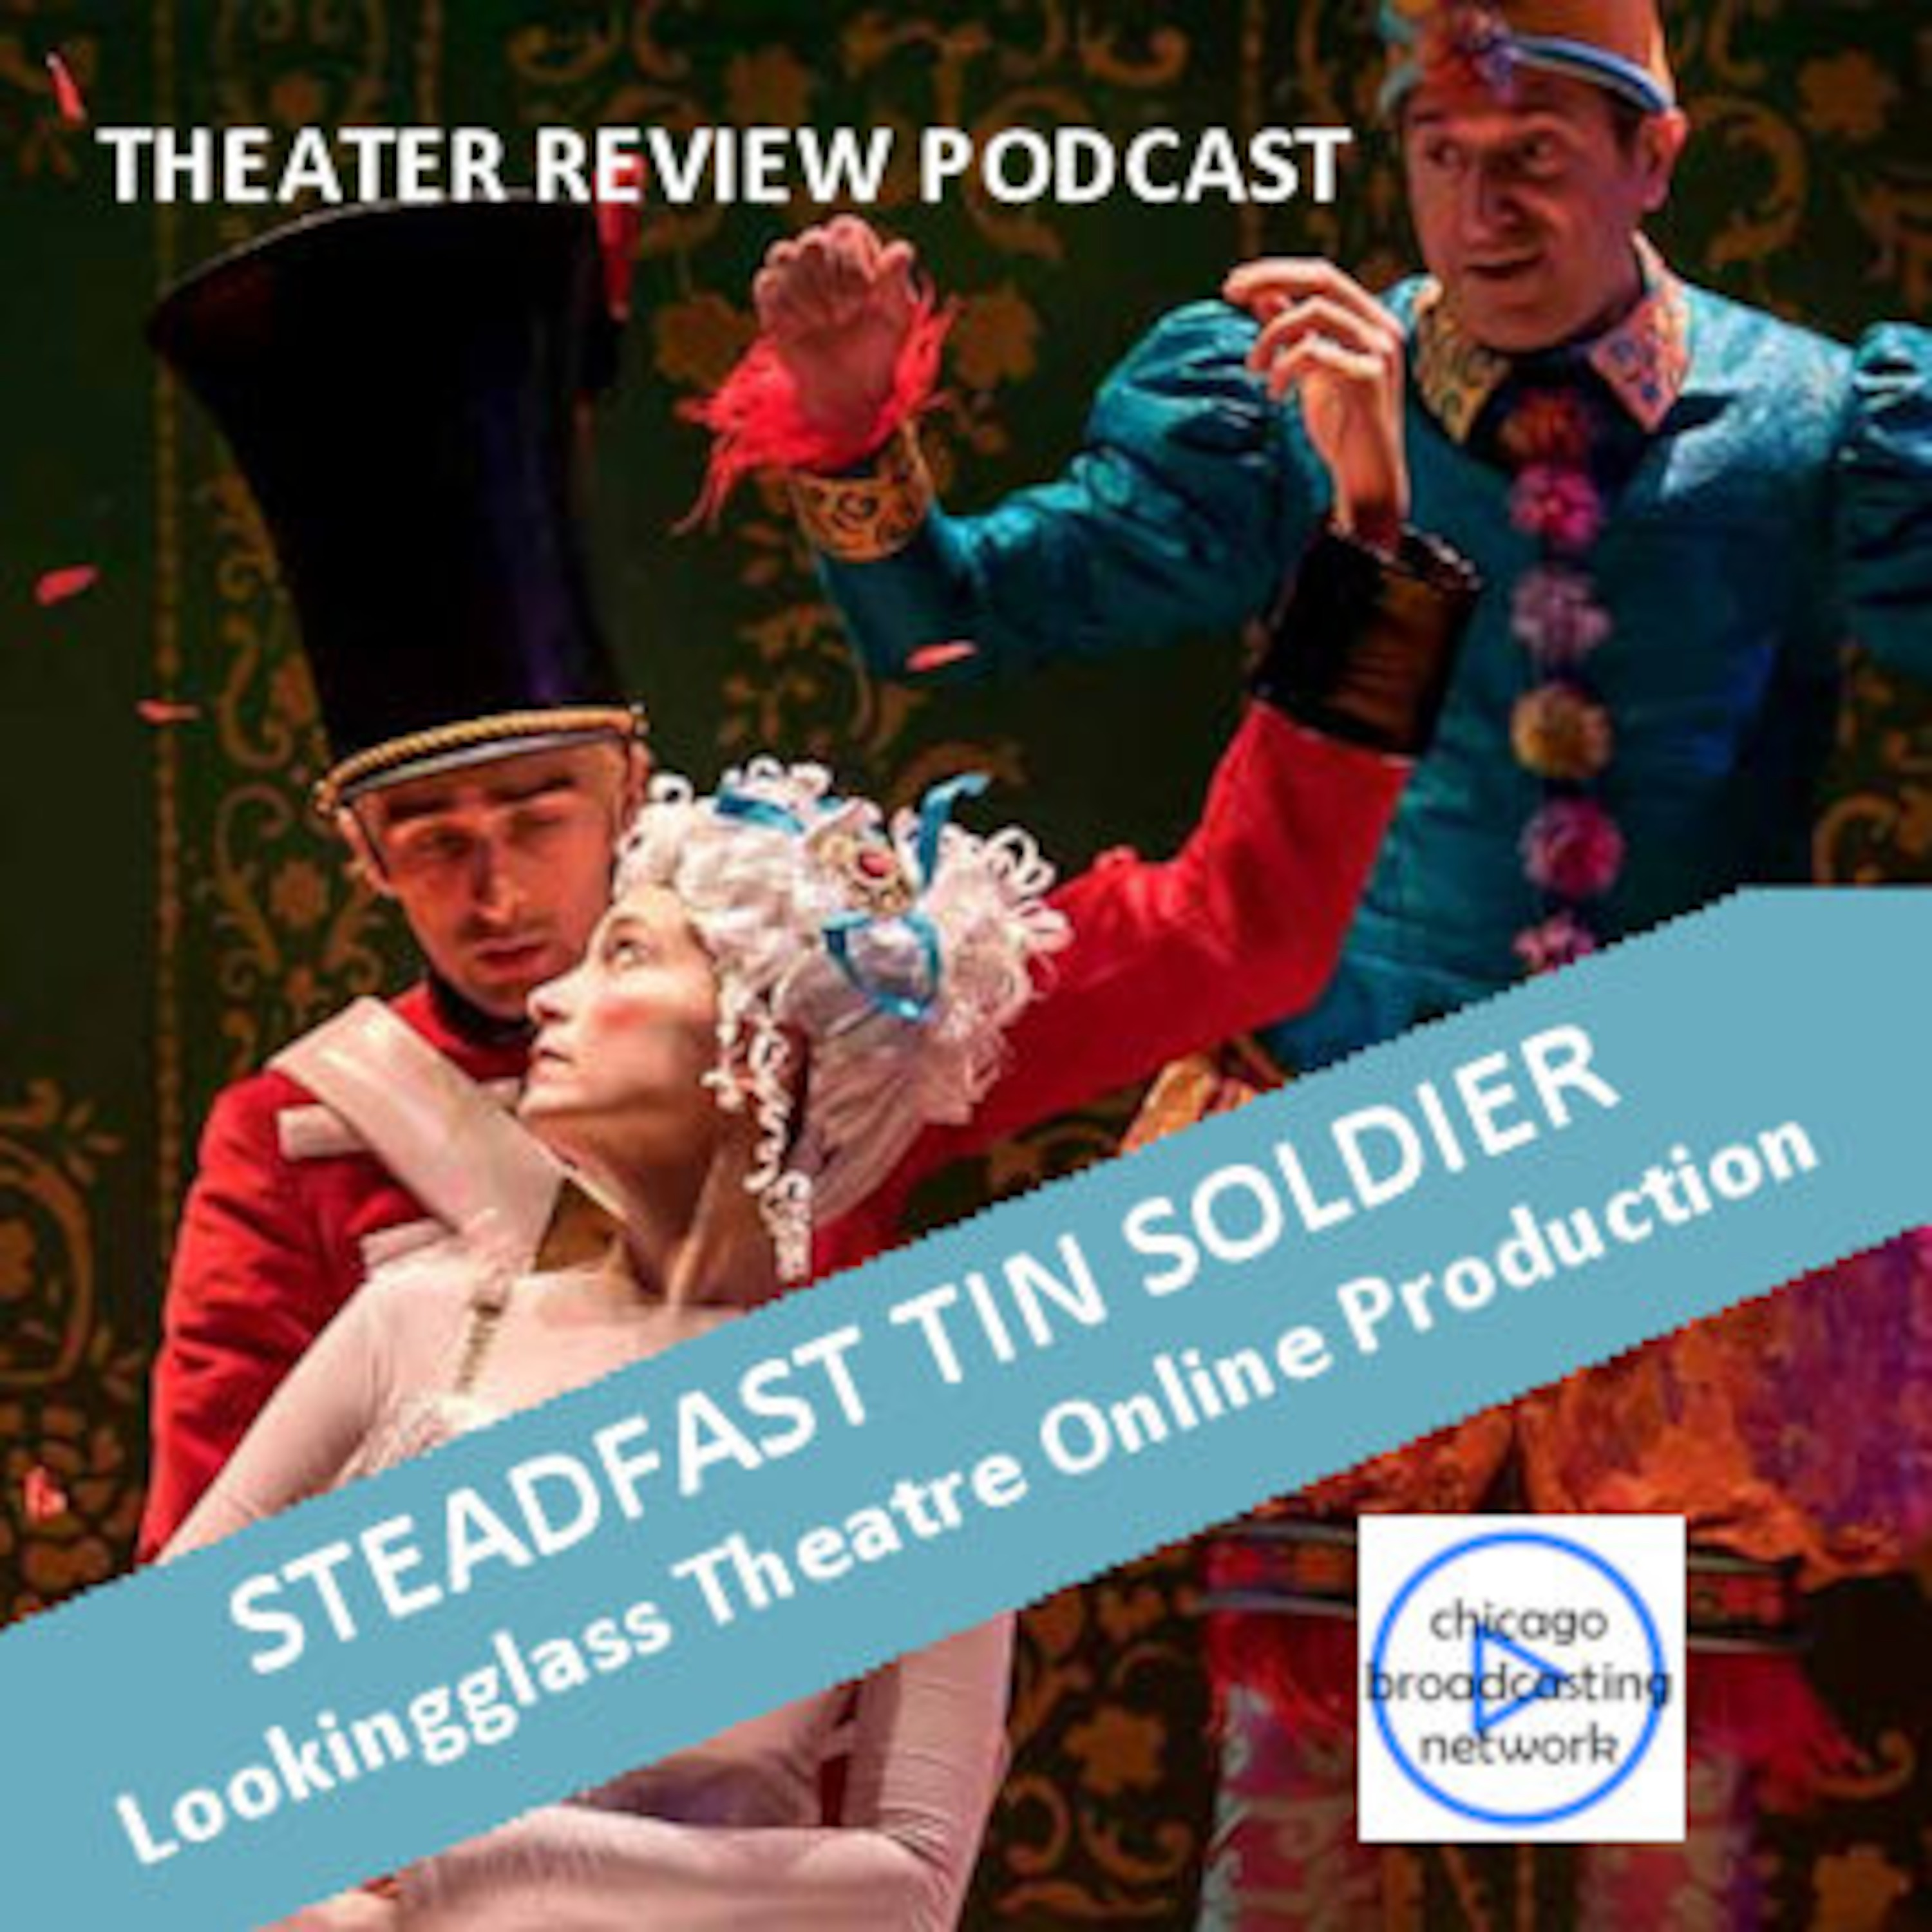 Episode 94: STEADFAST TIN SOLDIER | Podcast Theater Review |